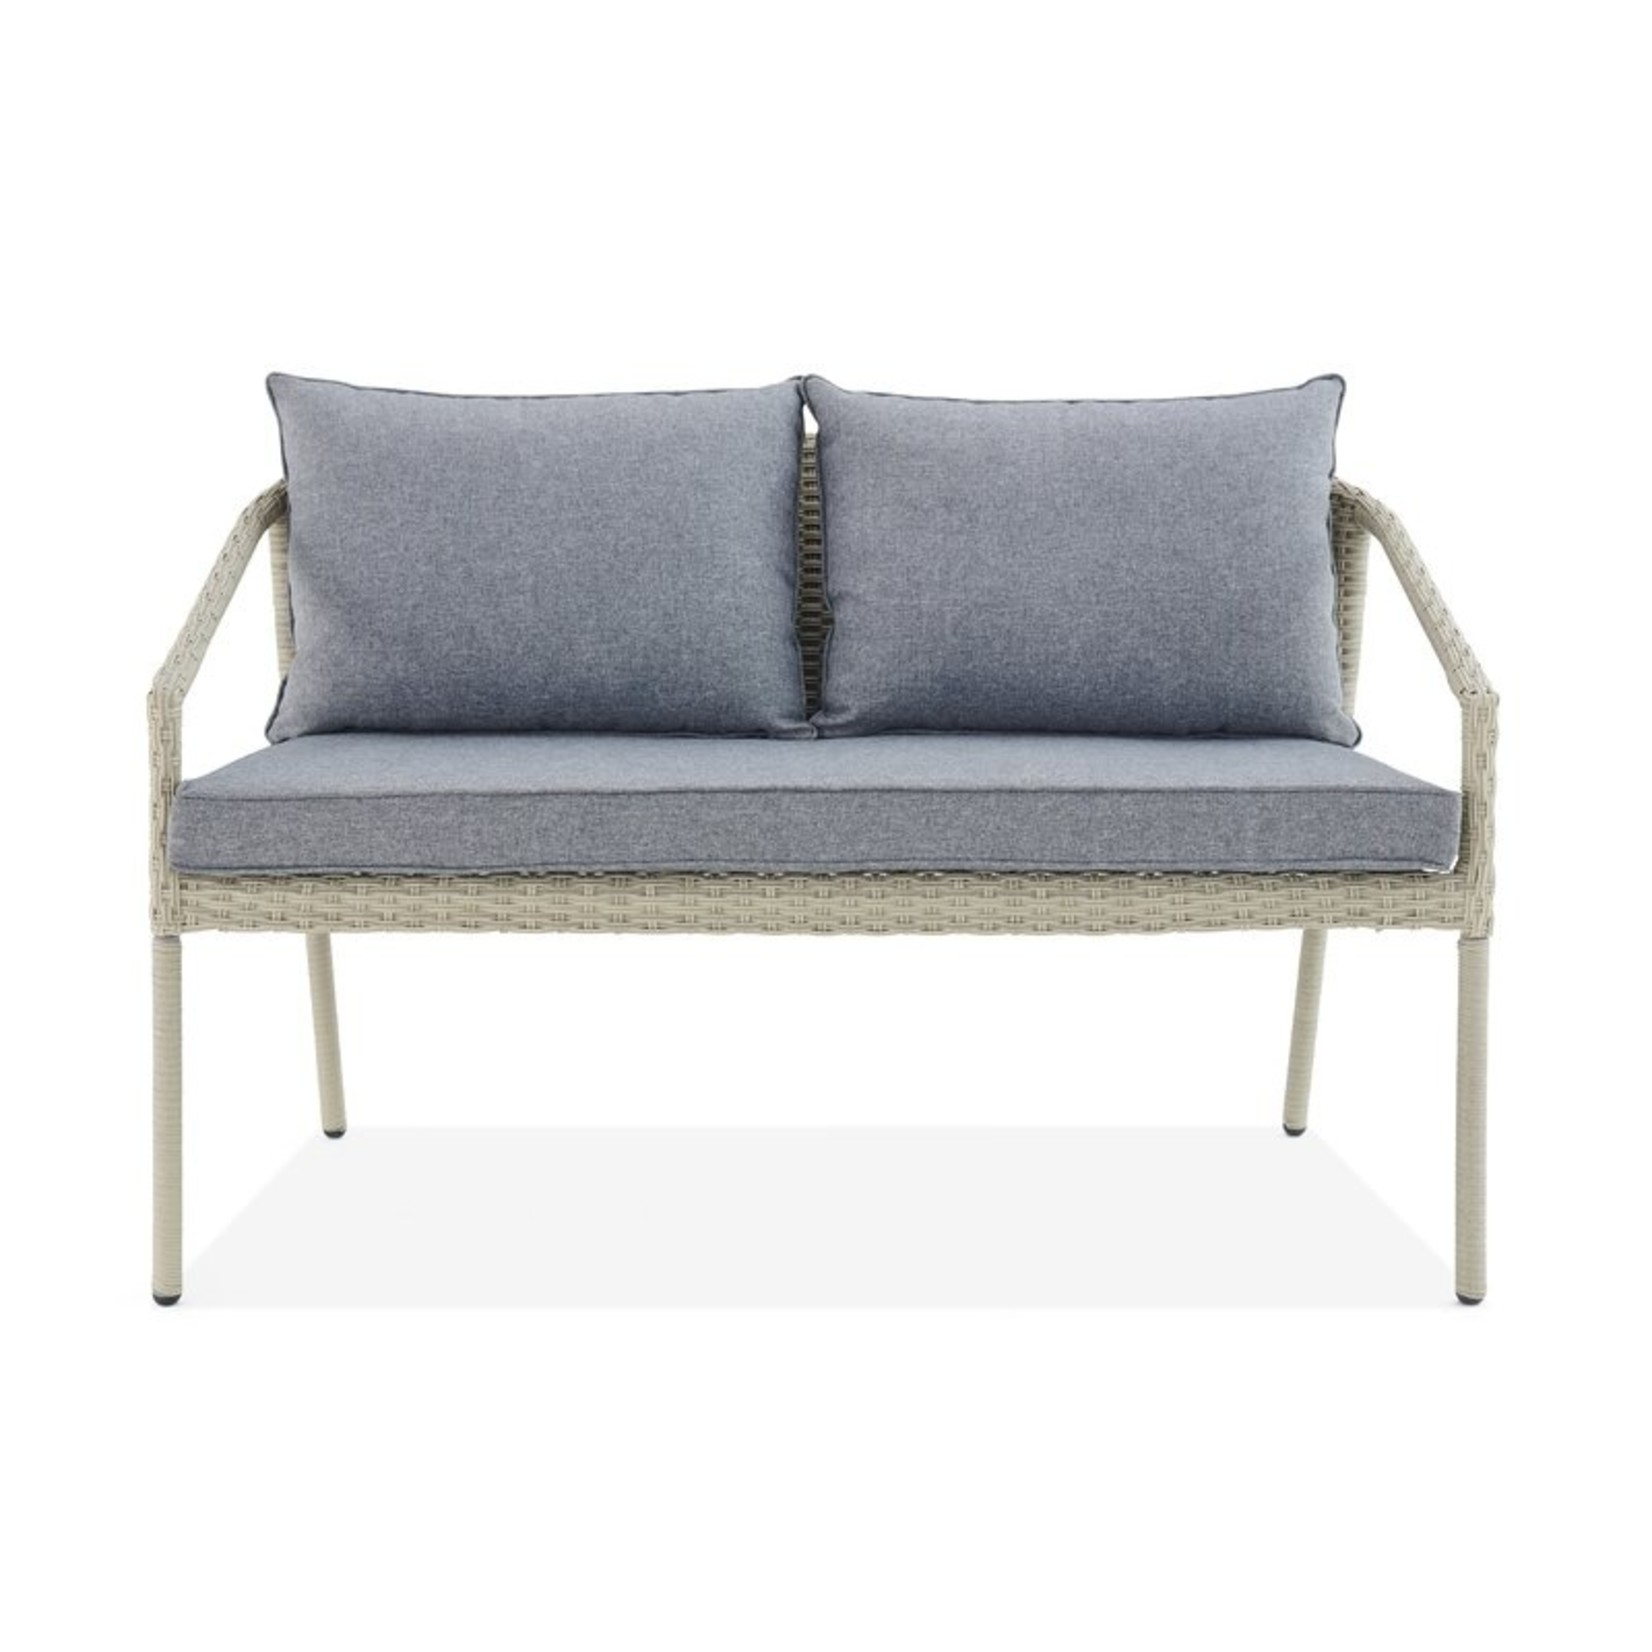 *Pancoast Loveseat with Cushions